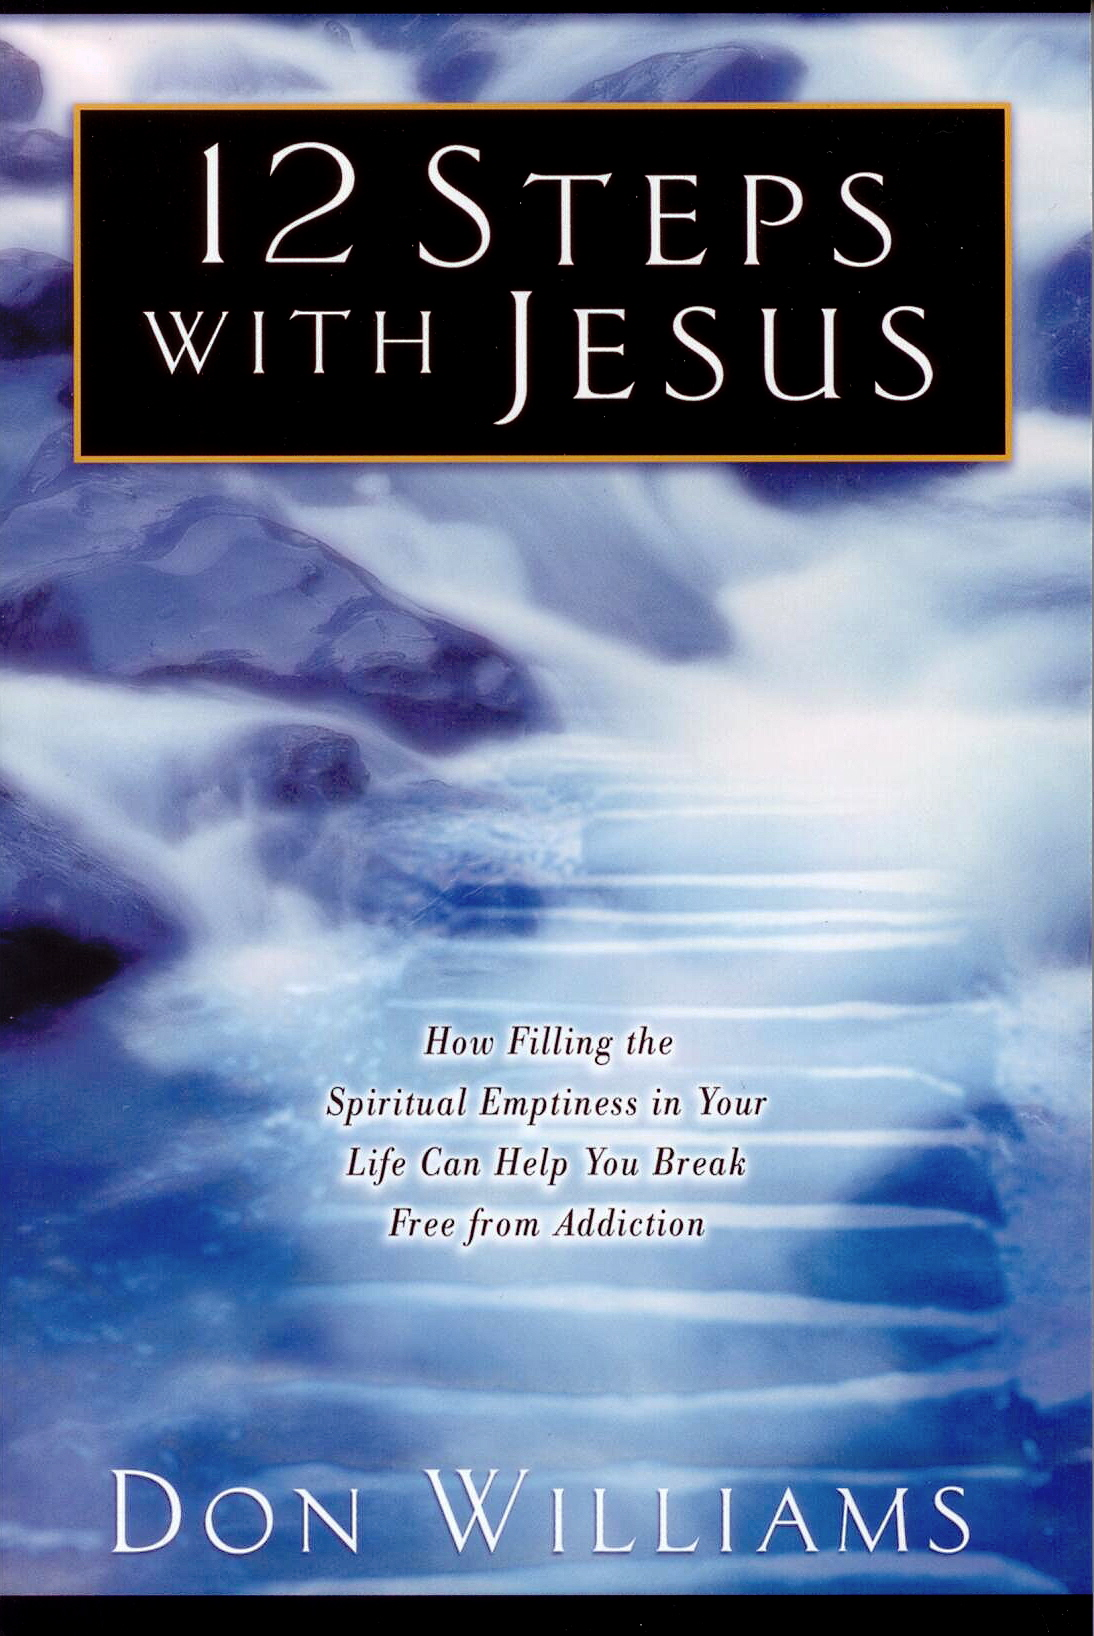 12 Steps With Jesus by Don Williams